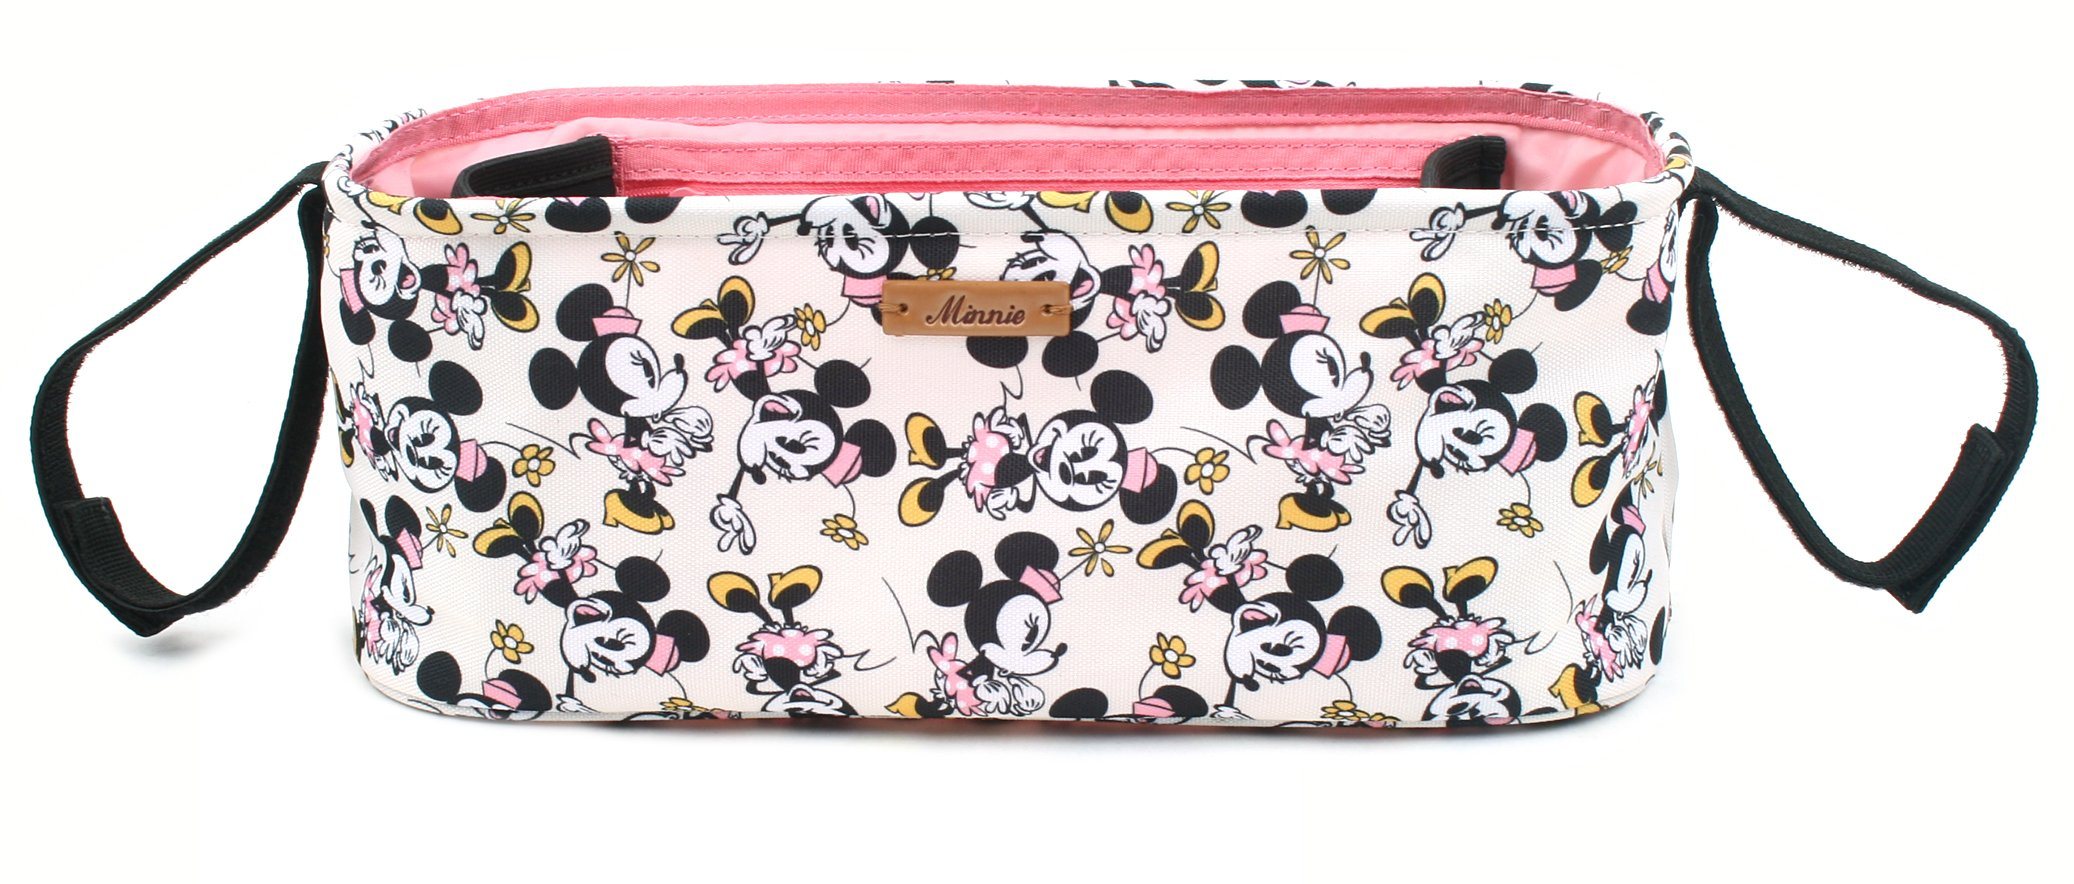 Disney Smile Mickey Minnie Mouse Organizer Diaper Storage Space for Cup Hoders, iPhones, Diapers, Toys (Ivory) by DisneyBagStore (Image #3)